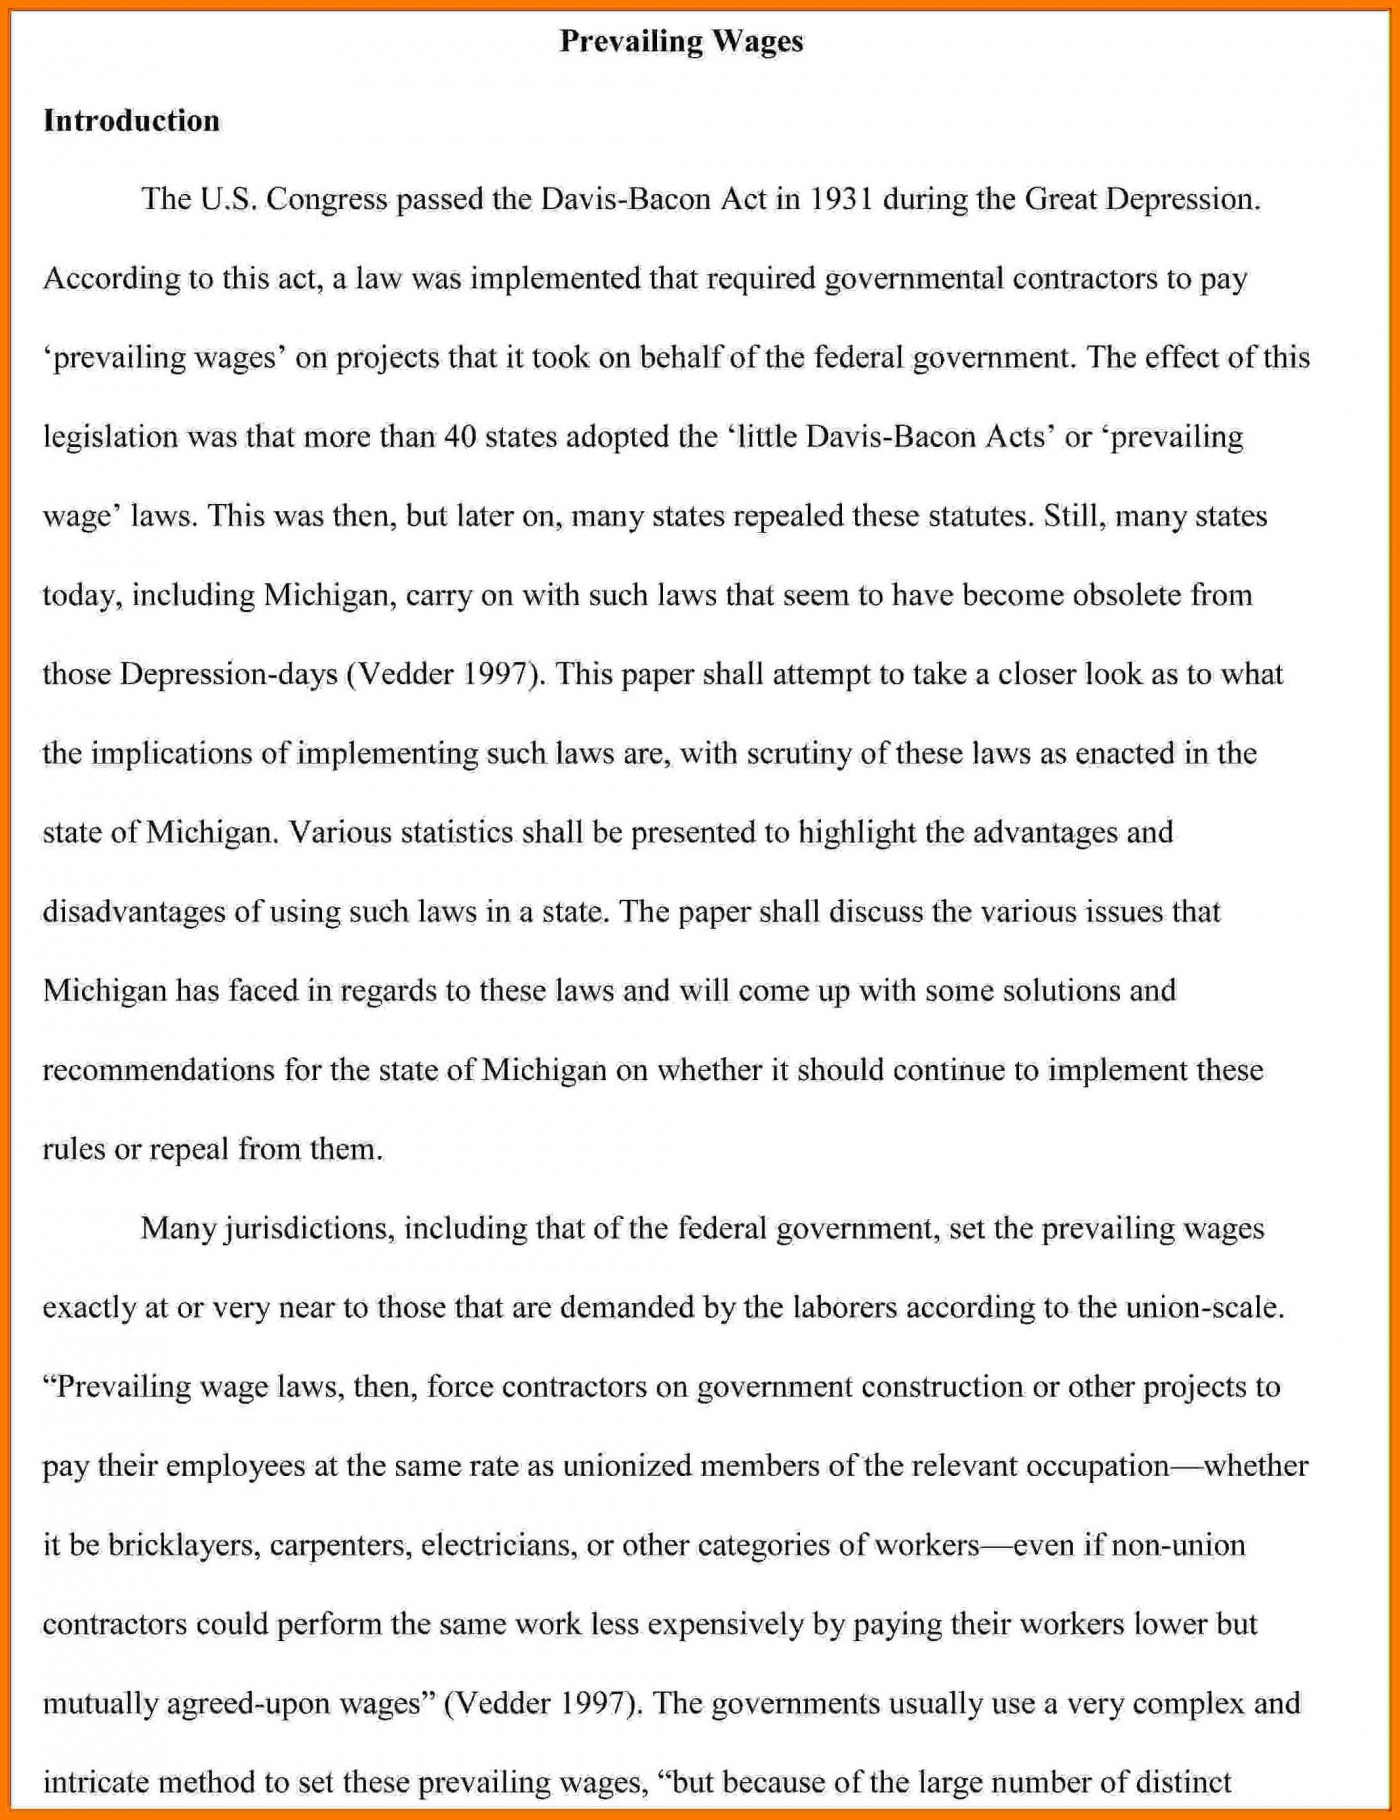 003 Introduction To Research Paper Example Collection Of Solutions Apa Fearsome A How Write An Pdf Paragraph For Mla 1400